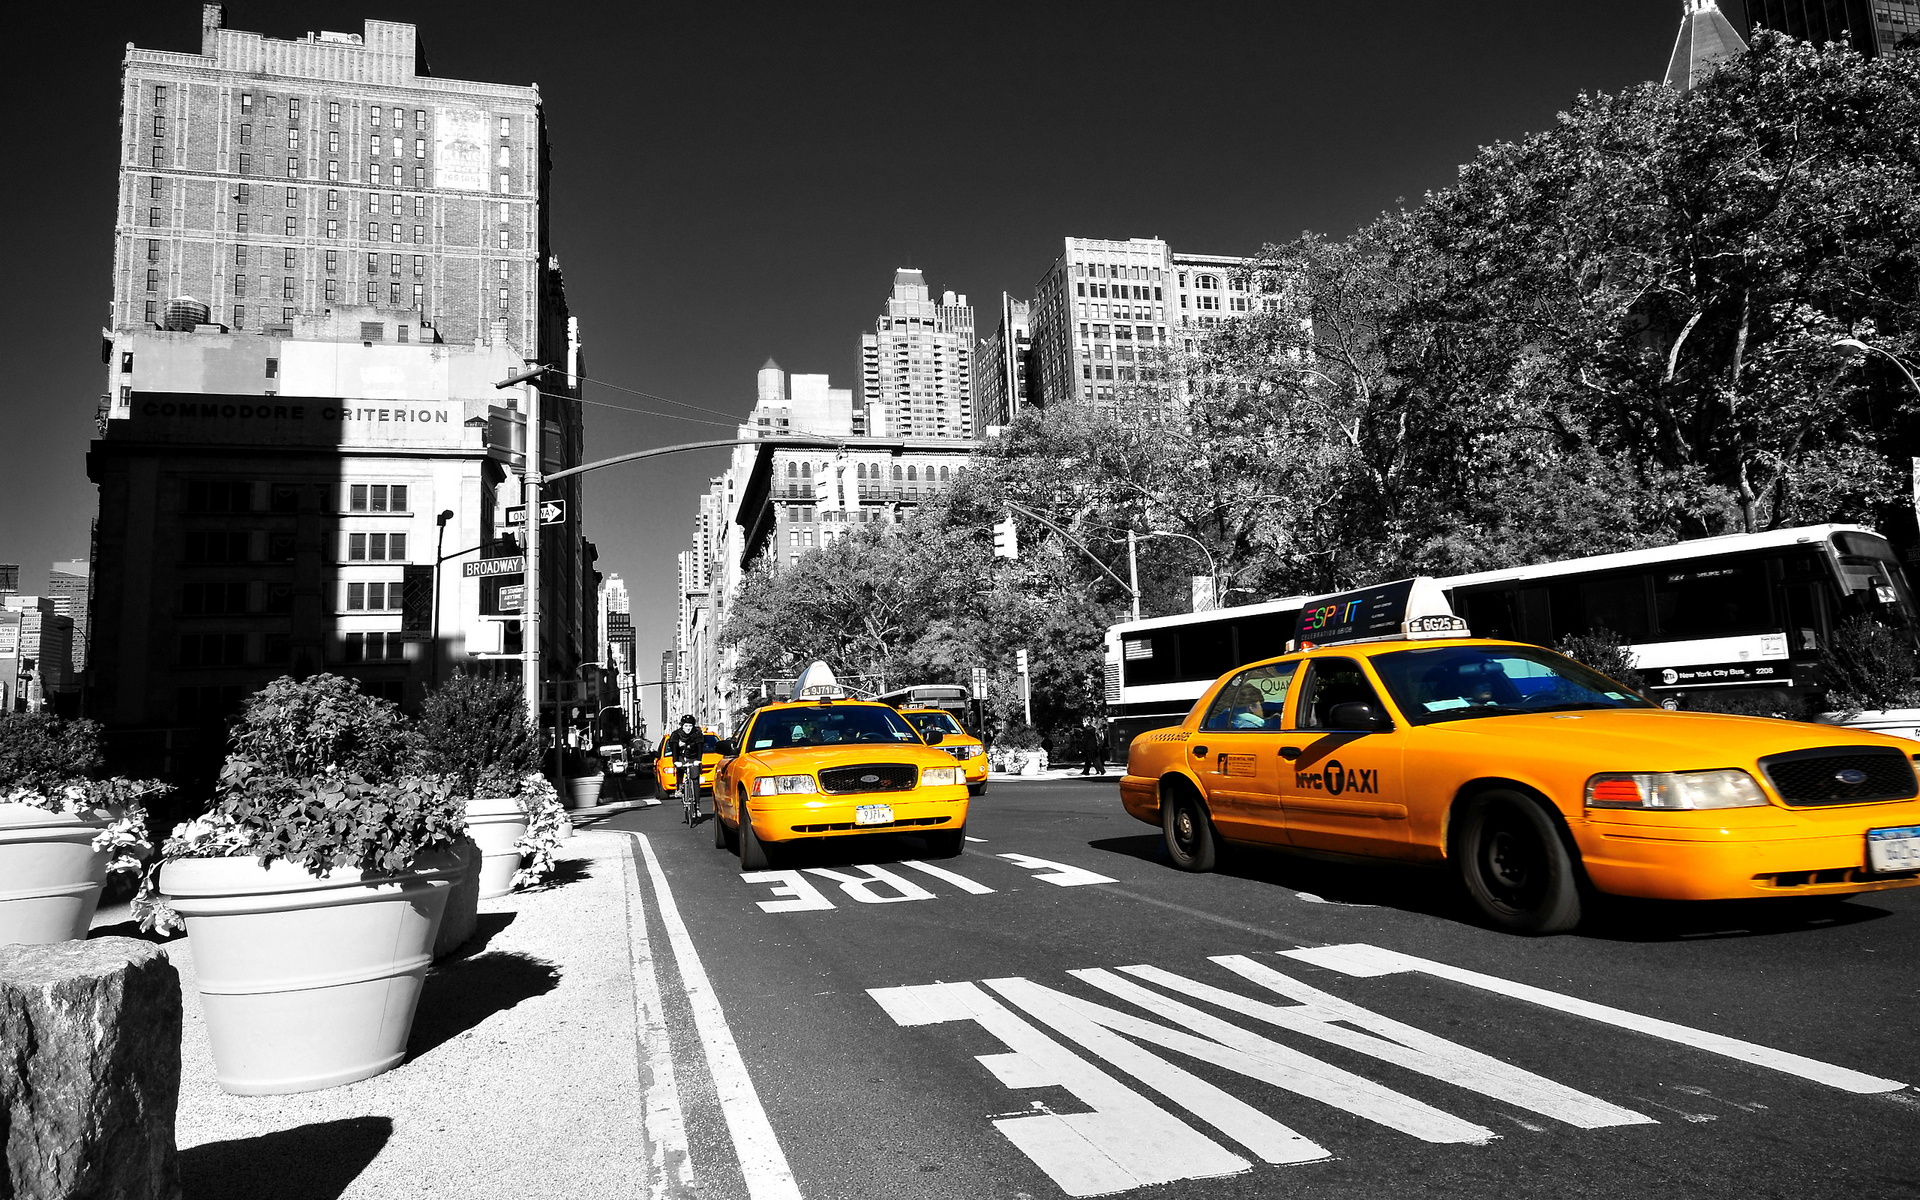 new-york-taxi-hd-free-for-1537434.jpg